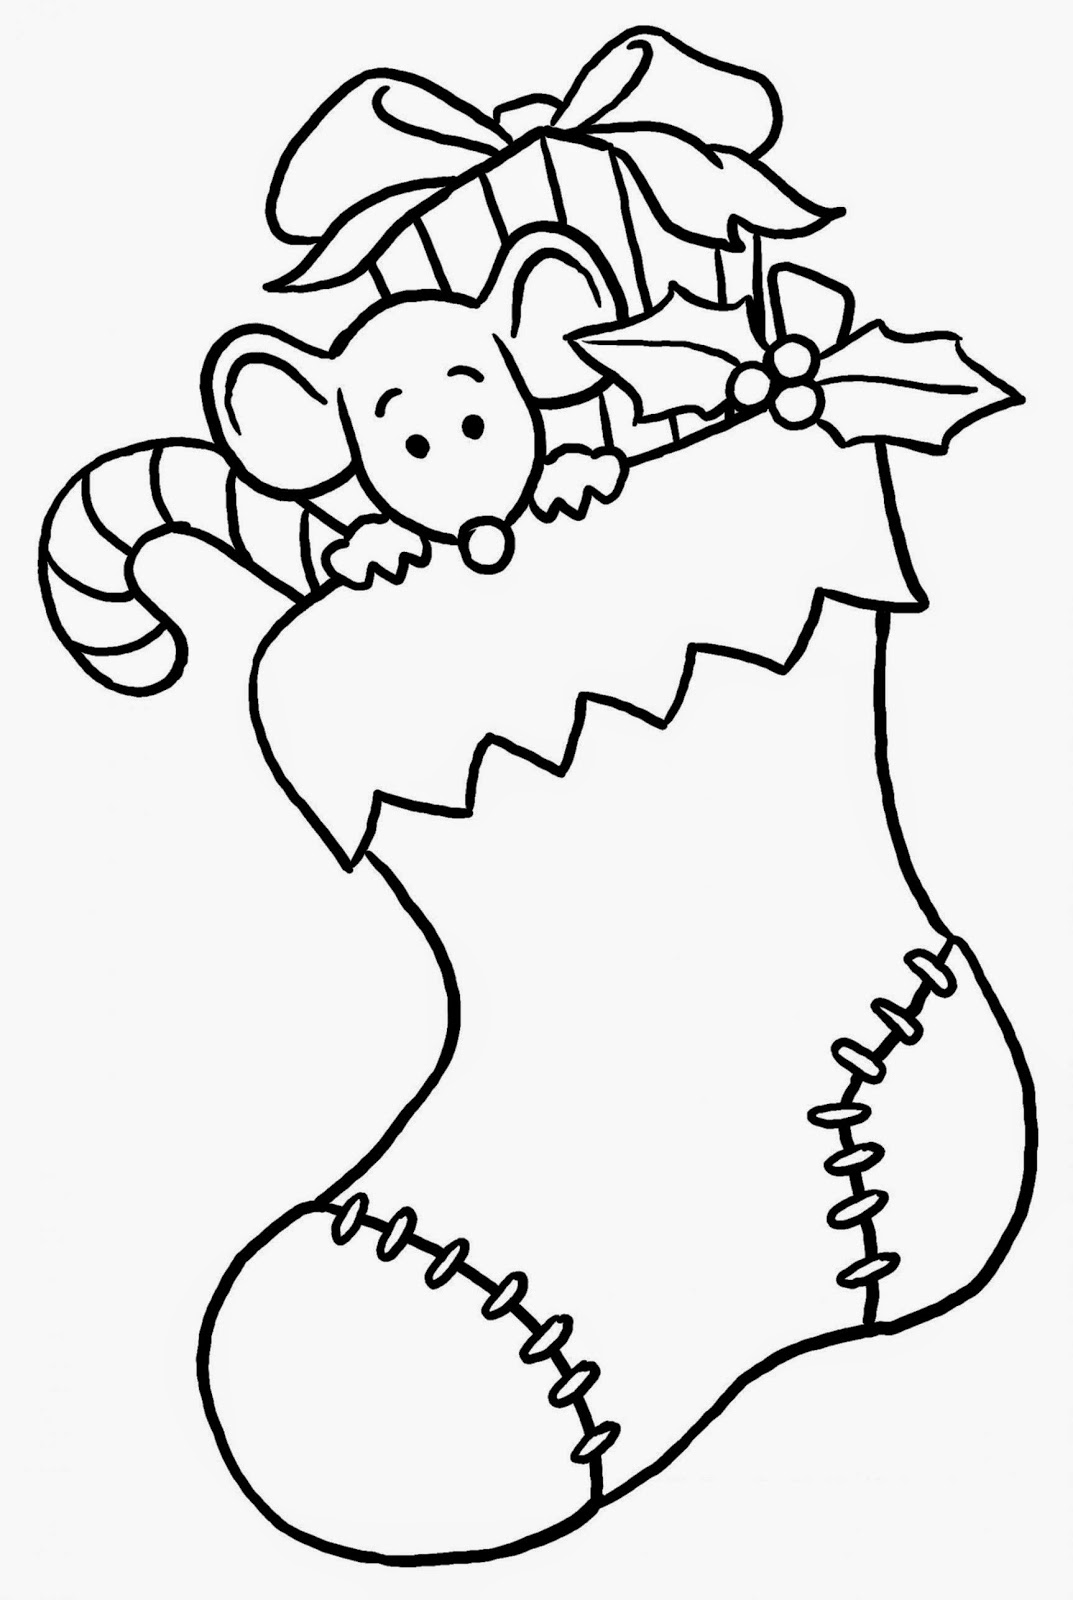 Printable Preschool Coloring Sheets